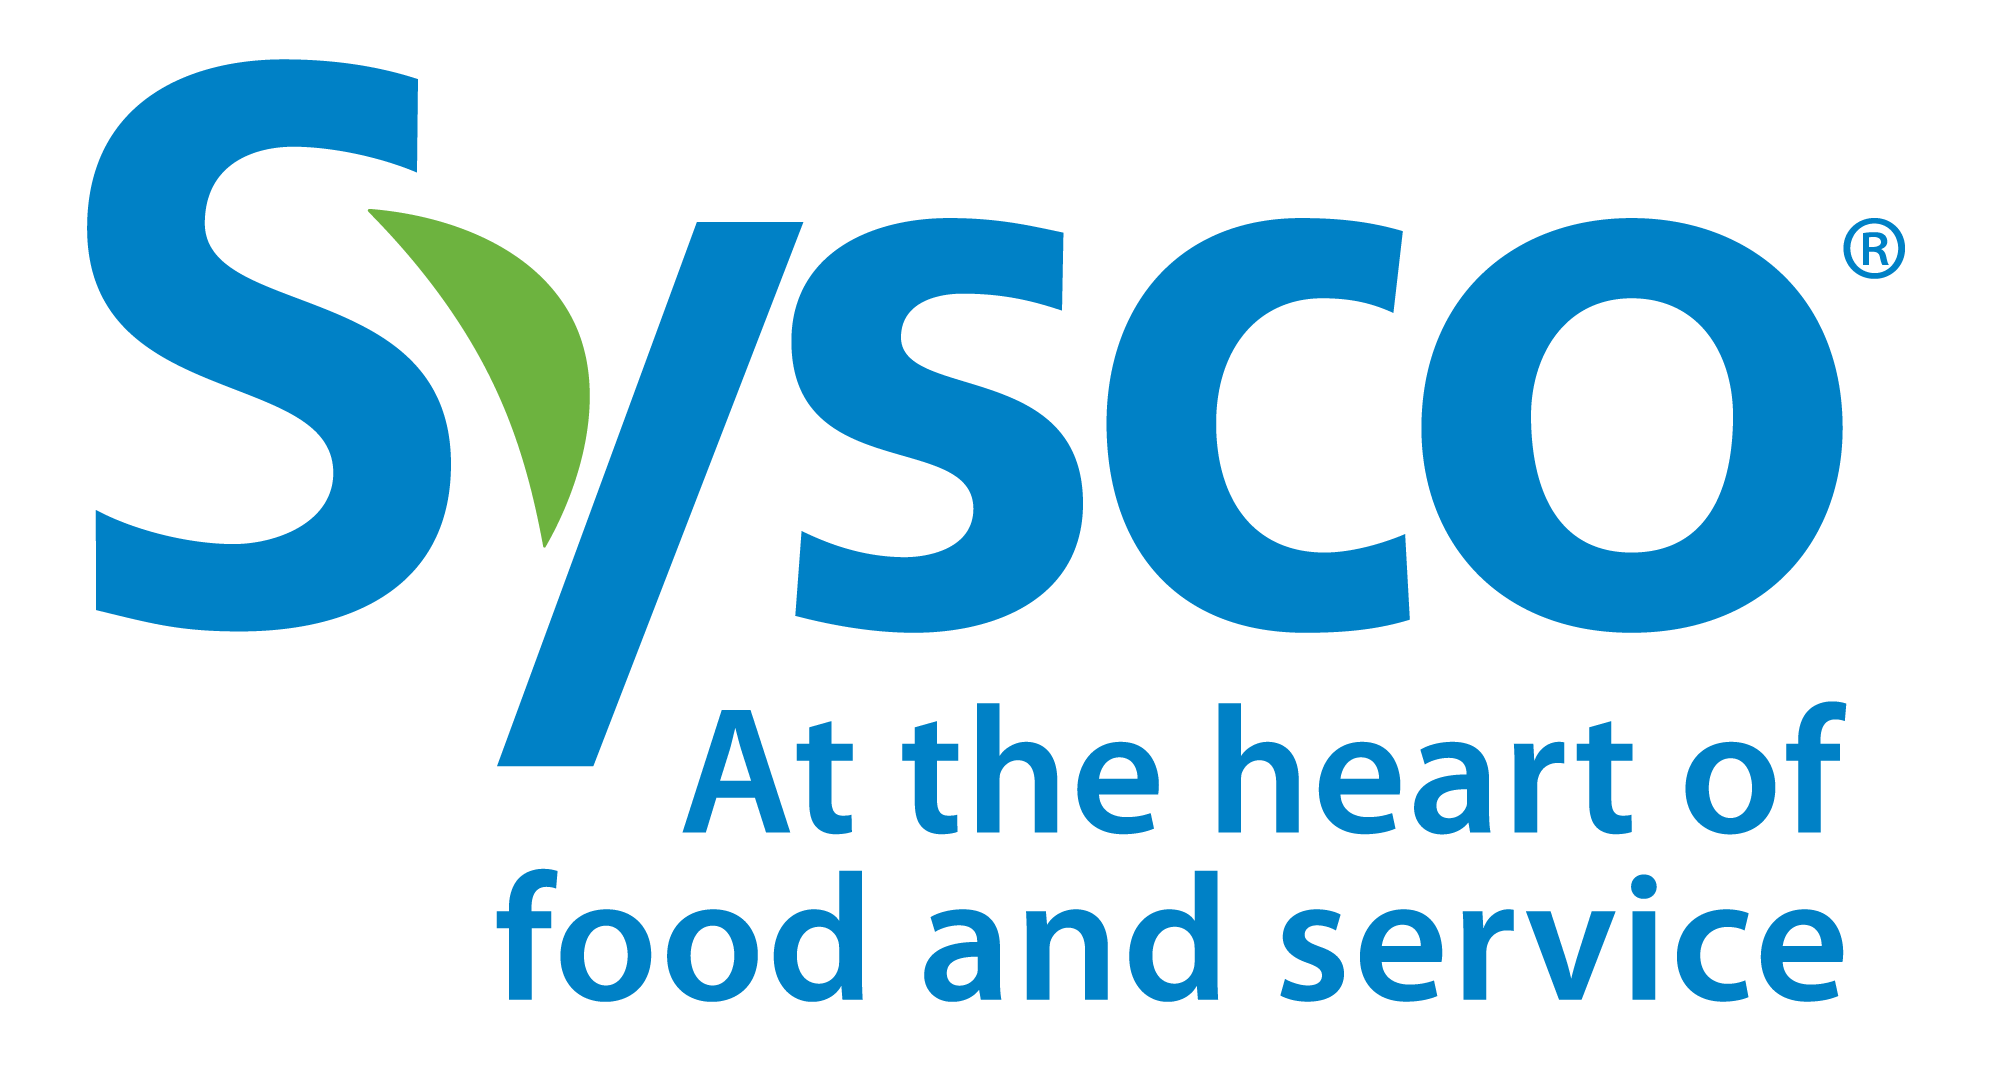 Sysco - At the heart of food and service